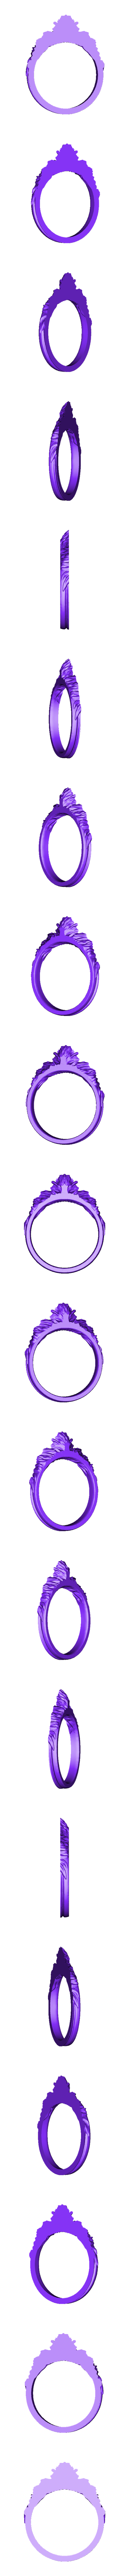 Wolf_Ring_Size_Fitting_17mm.stl Download free STL file Two Wolves - Set of Rings • 3D printing design, LabradoriteWolf